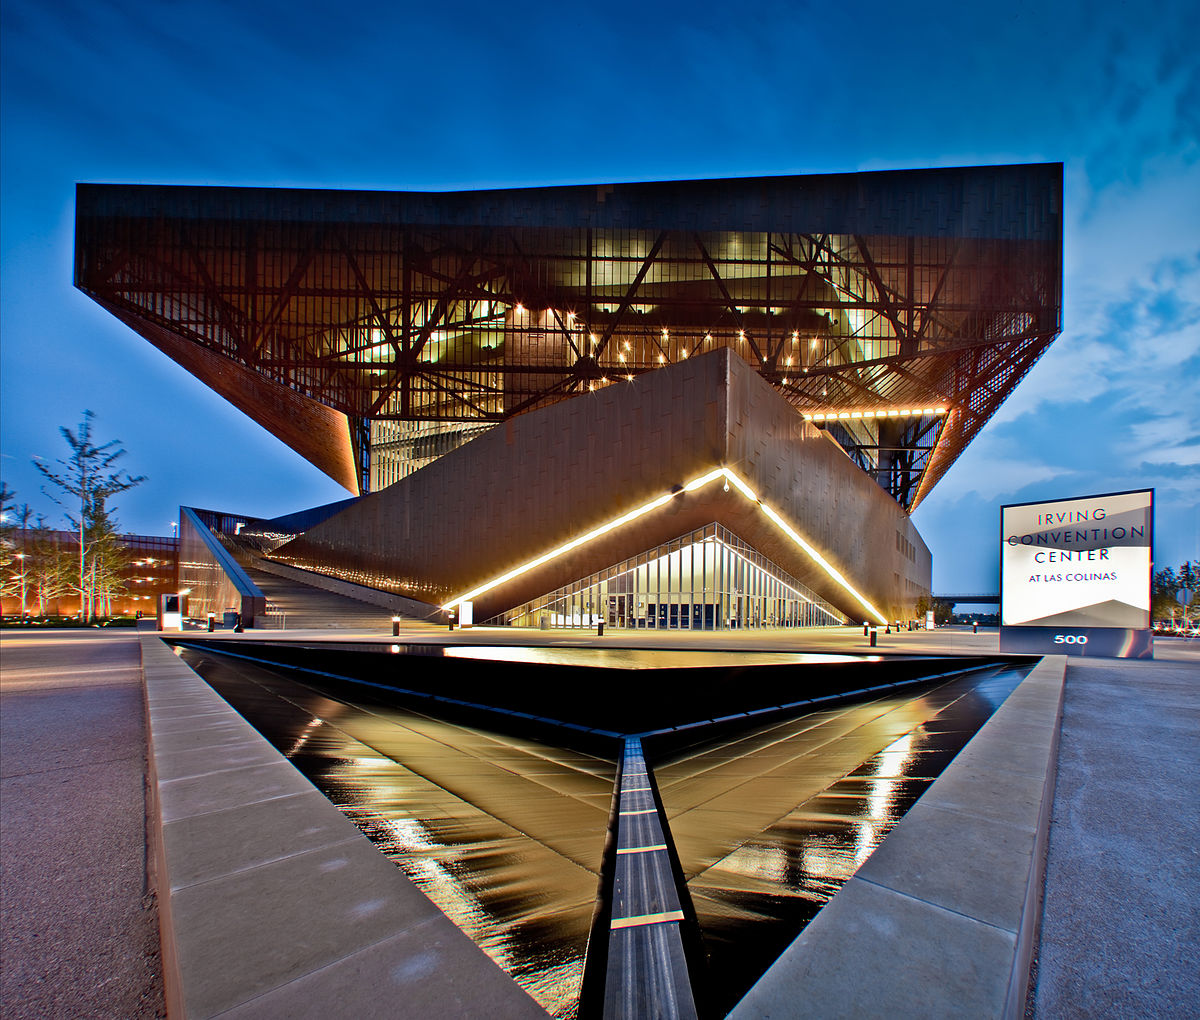 Convention Center In Vilvoorde: Irving Convention Center At Las Colinas